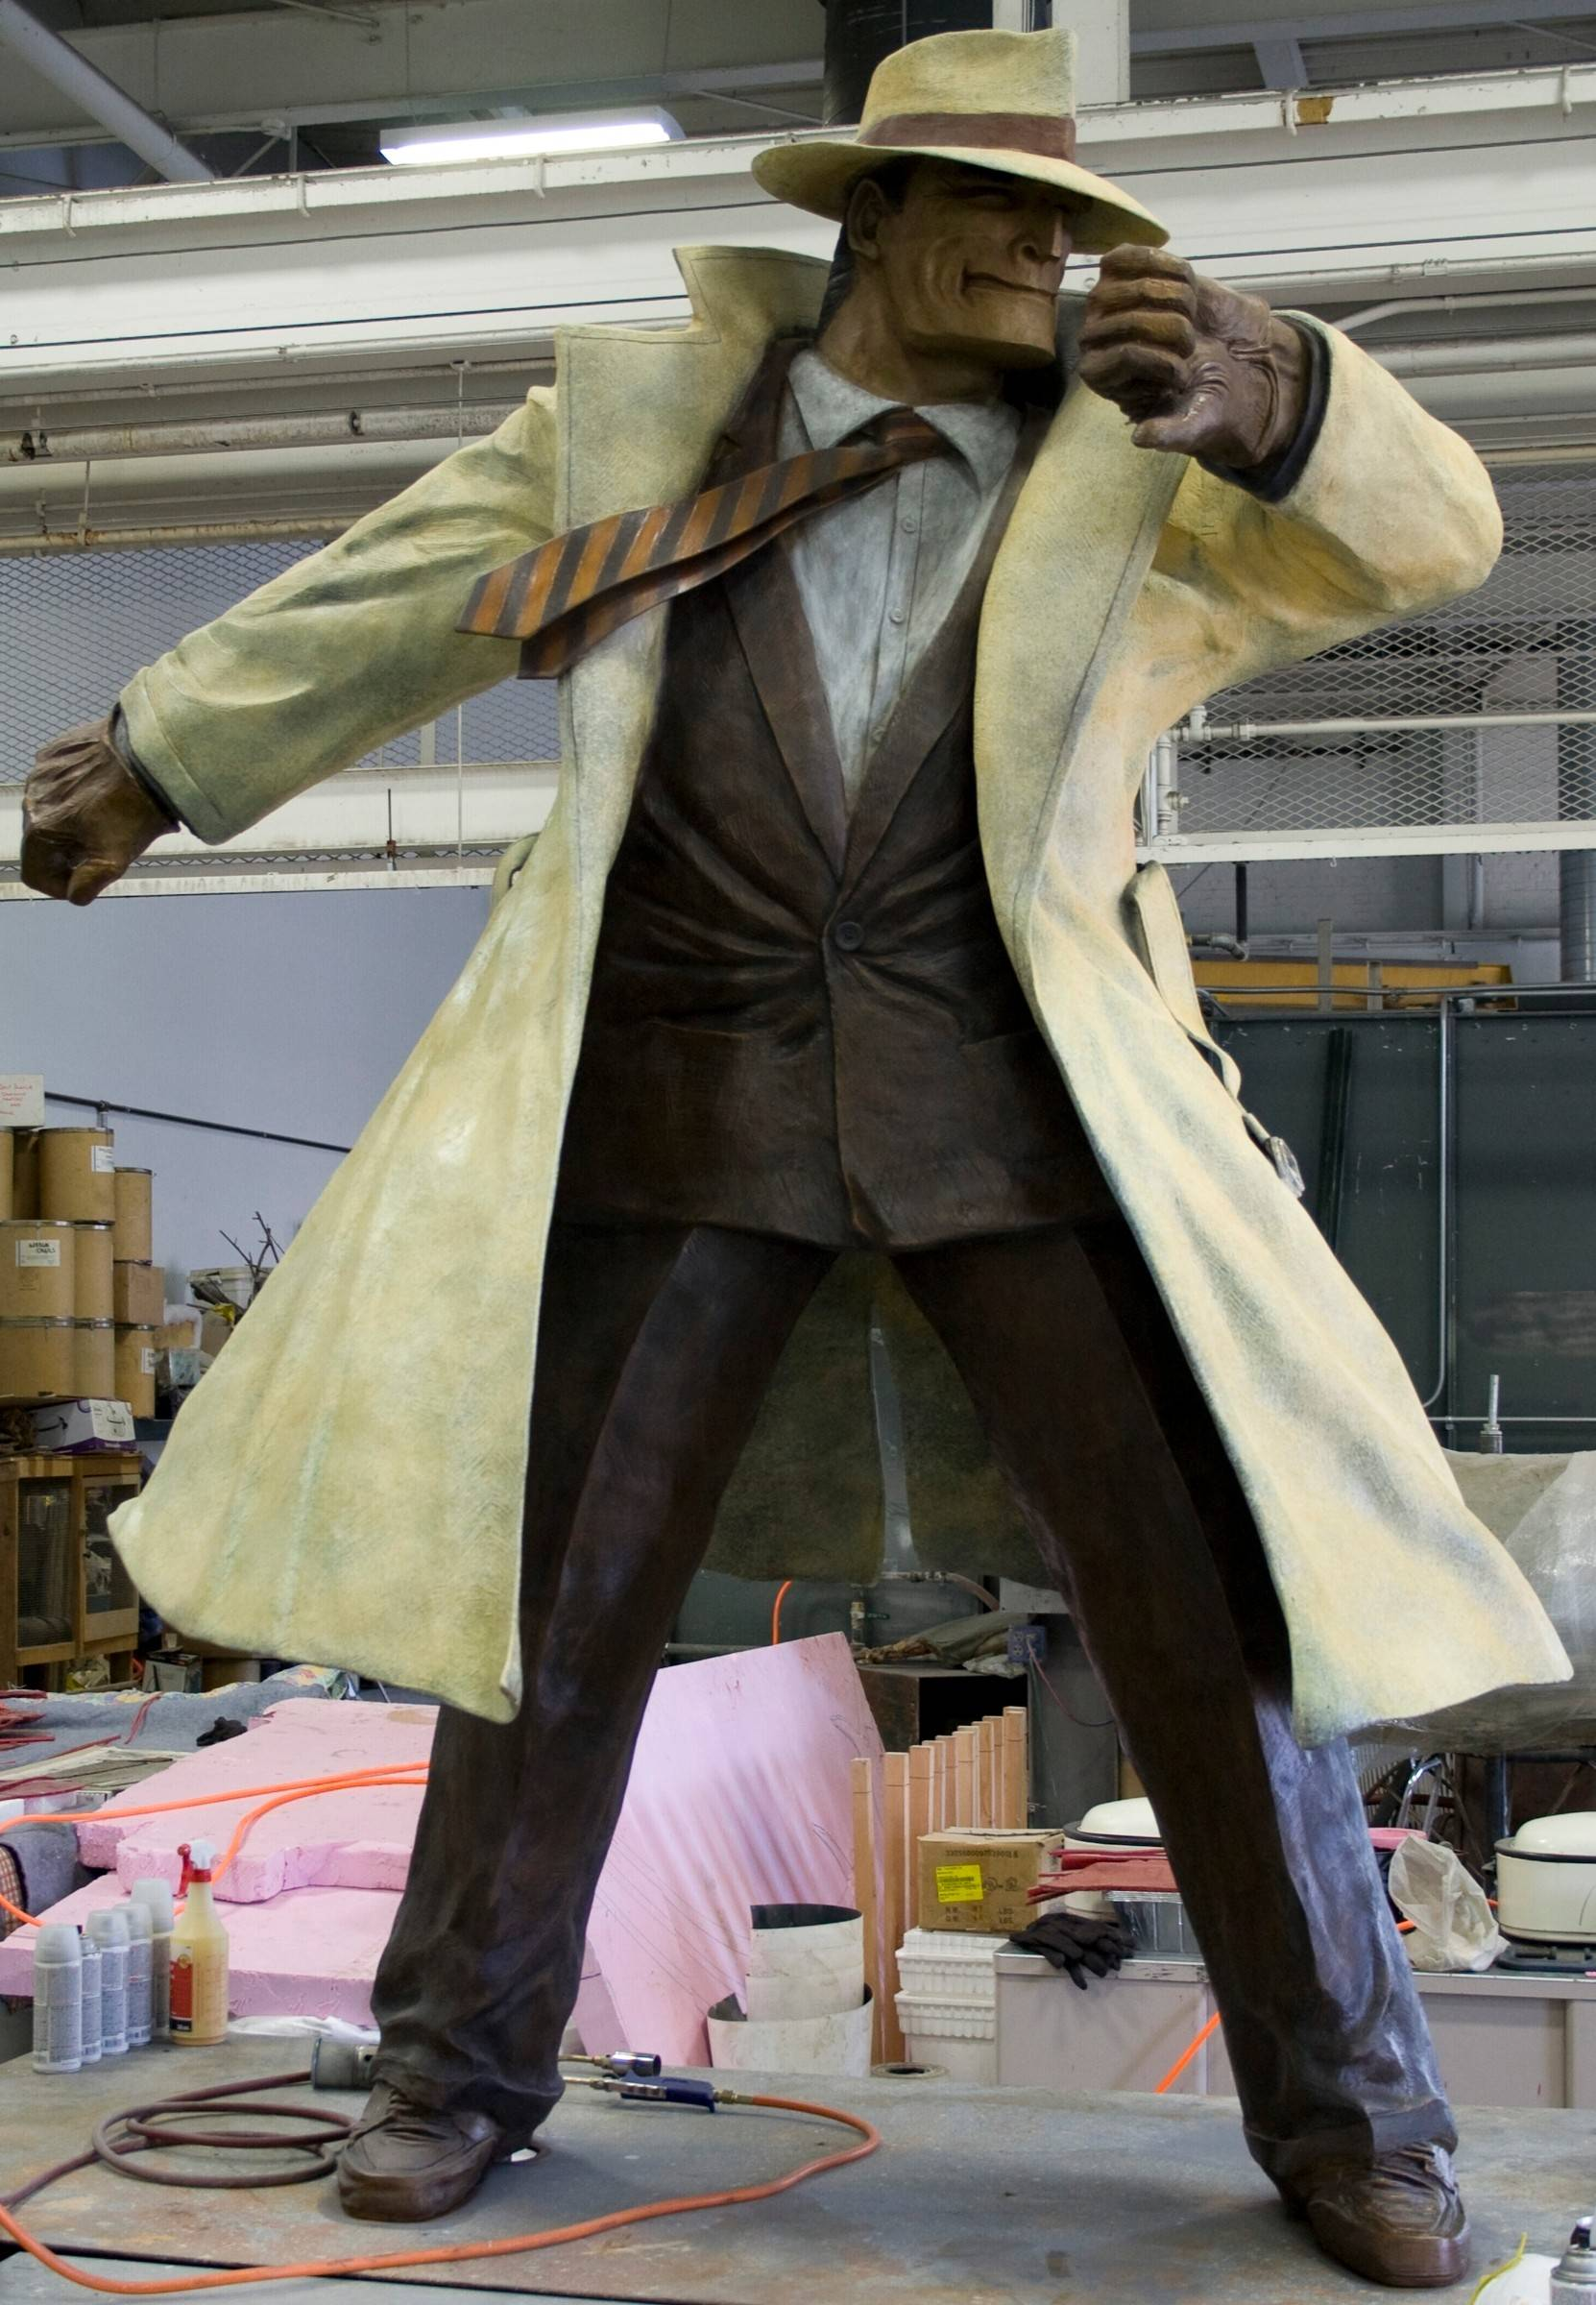 Naperville detective sculpture moving to 'higher ground'